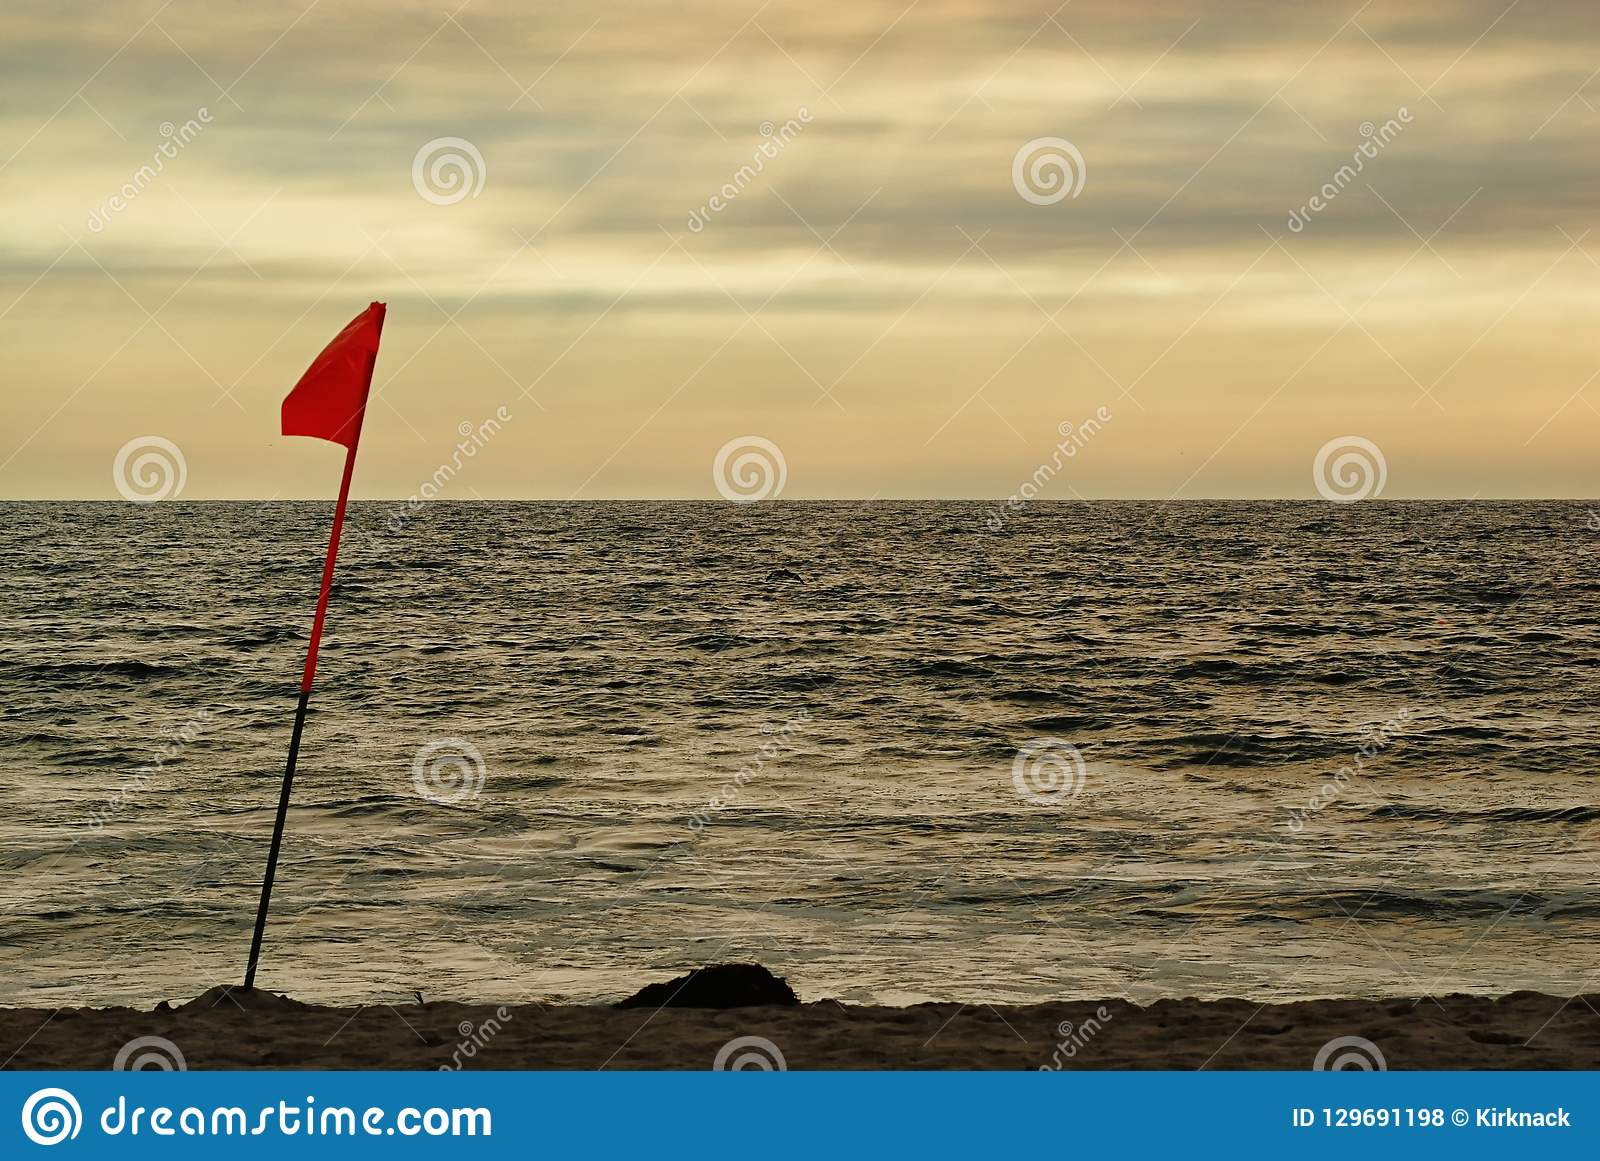 A lifeguard`s flag in the afternoon light of an overcast beach.